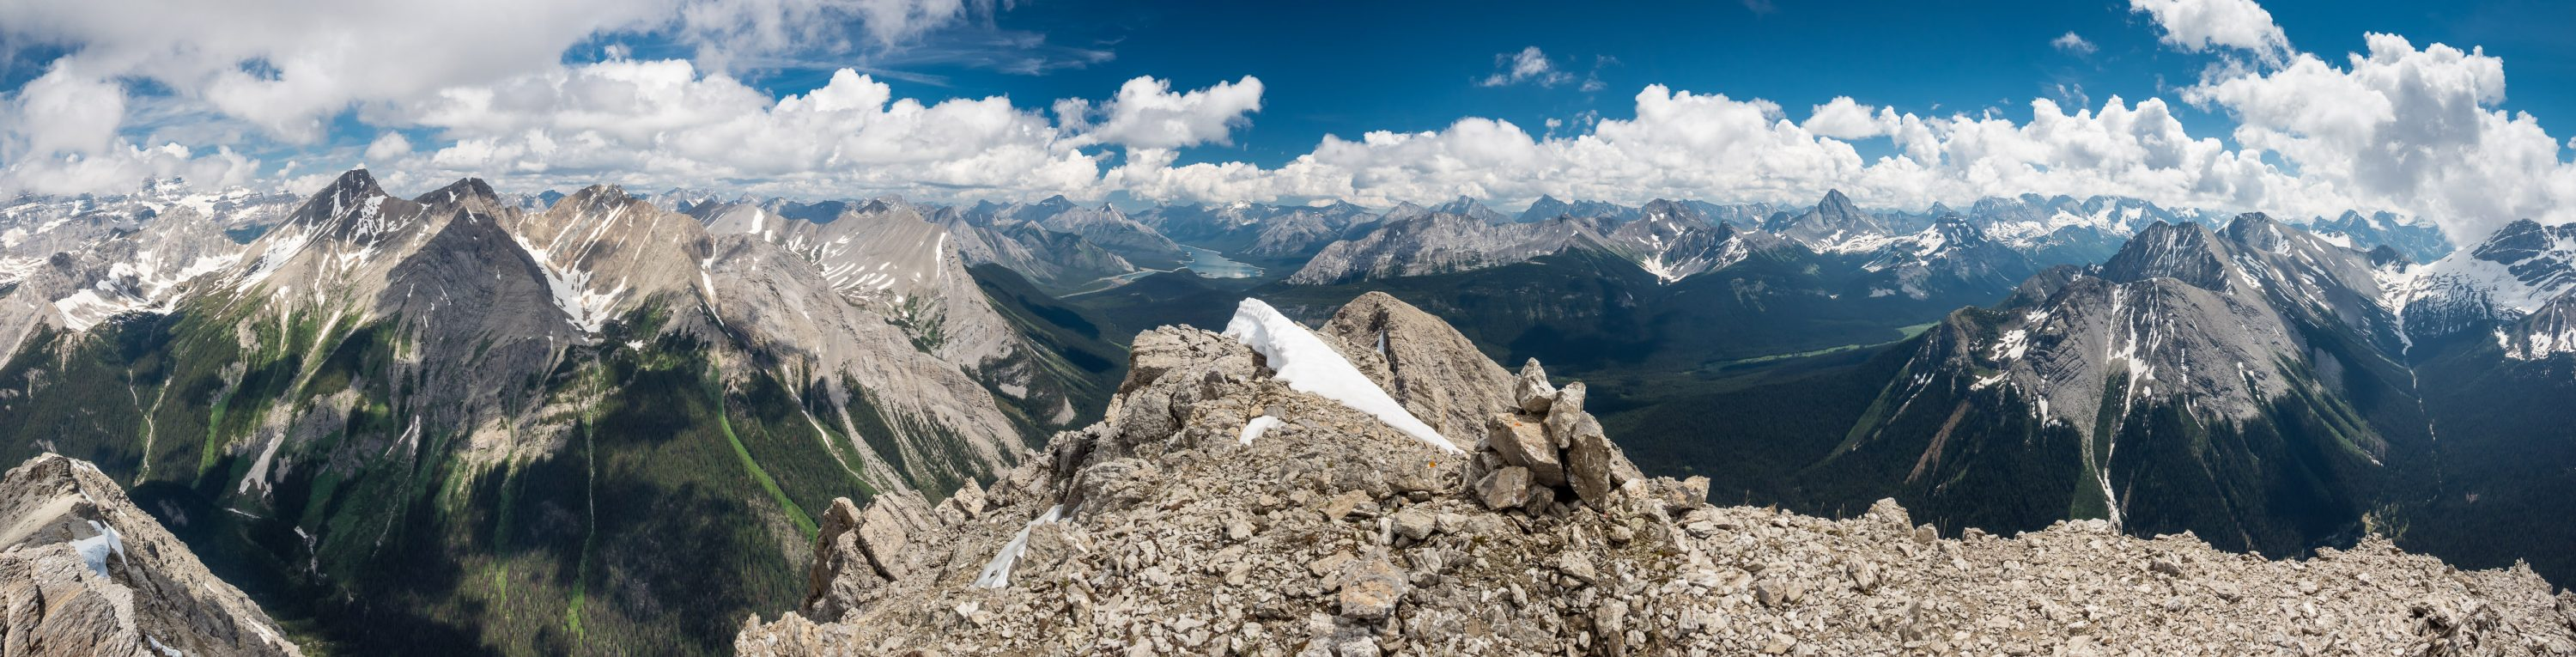 This is the view we were hoping for! From L to R summits include, Mount Assiniboine, Aurora Byng, Turner, Morrison, Spray Lakes, Shark, Smuts, Birdwood, Warre, Vavasour and Mount Sir Douglas in clouds beyond.